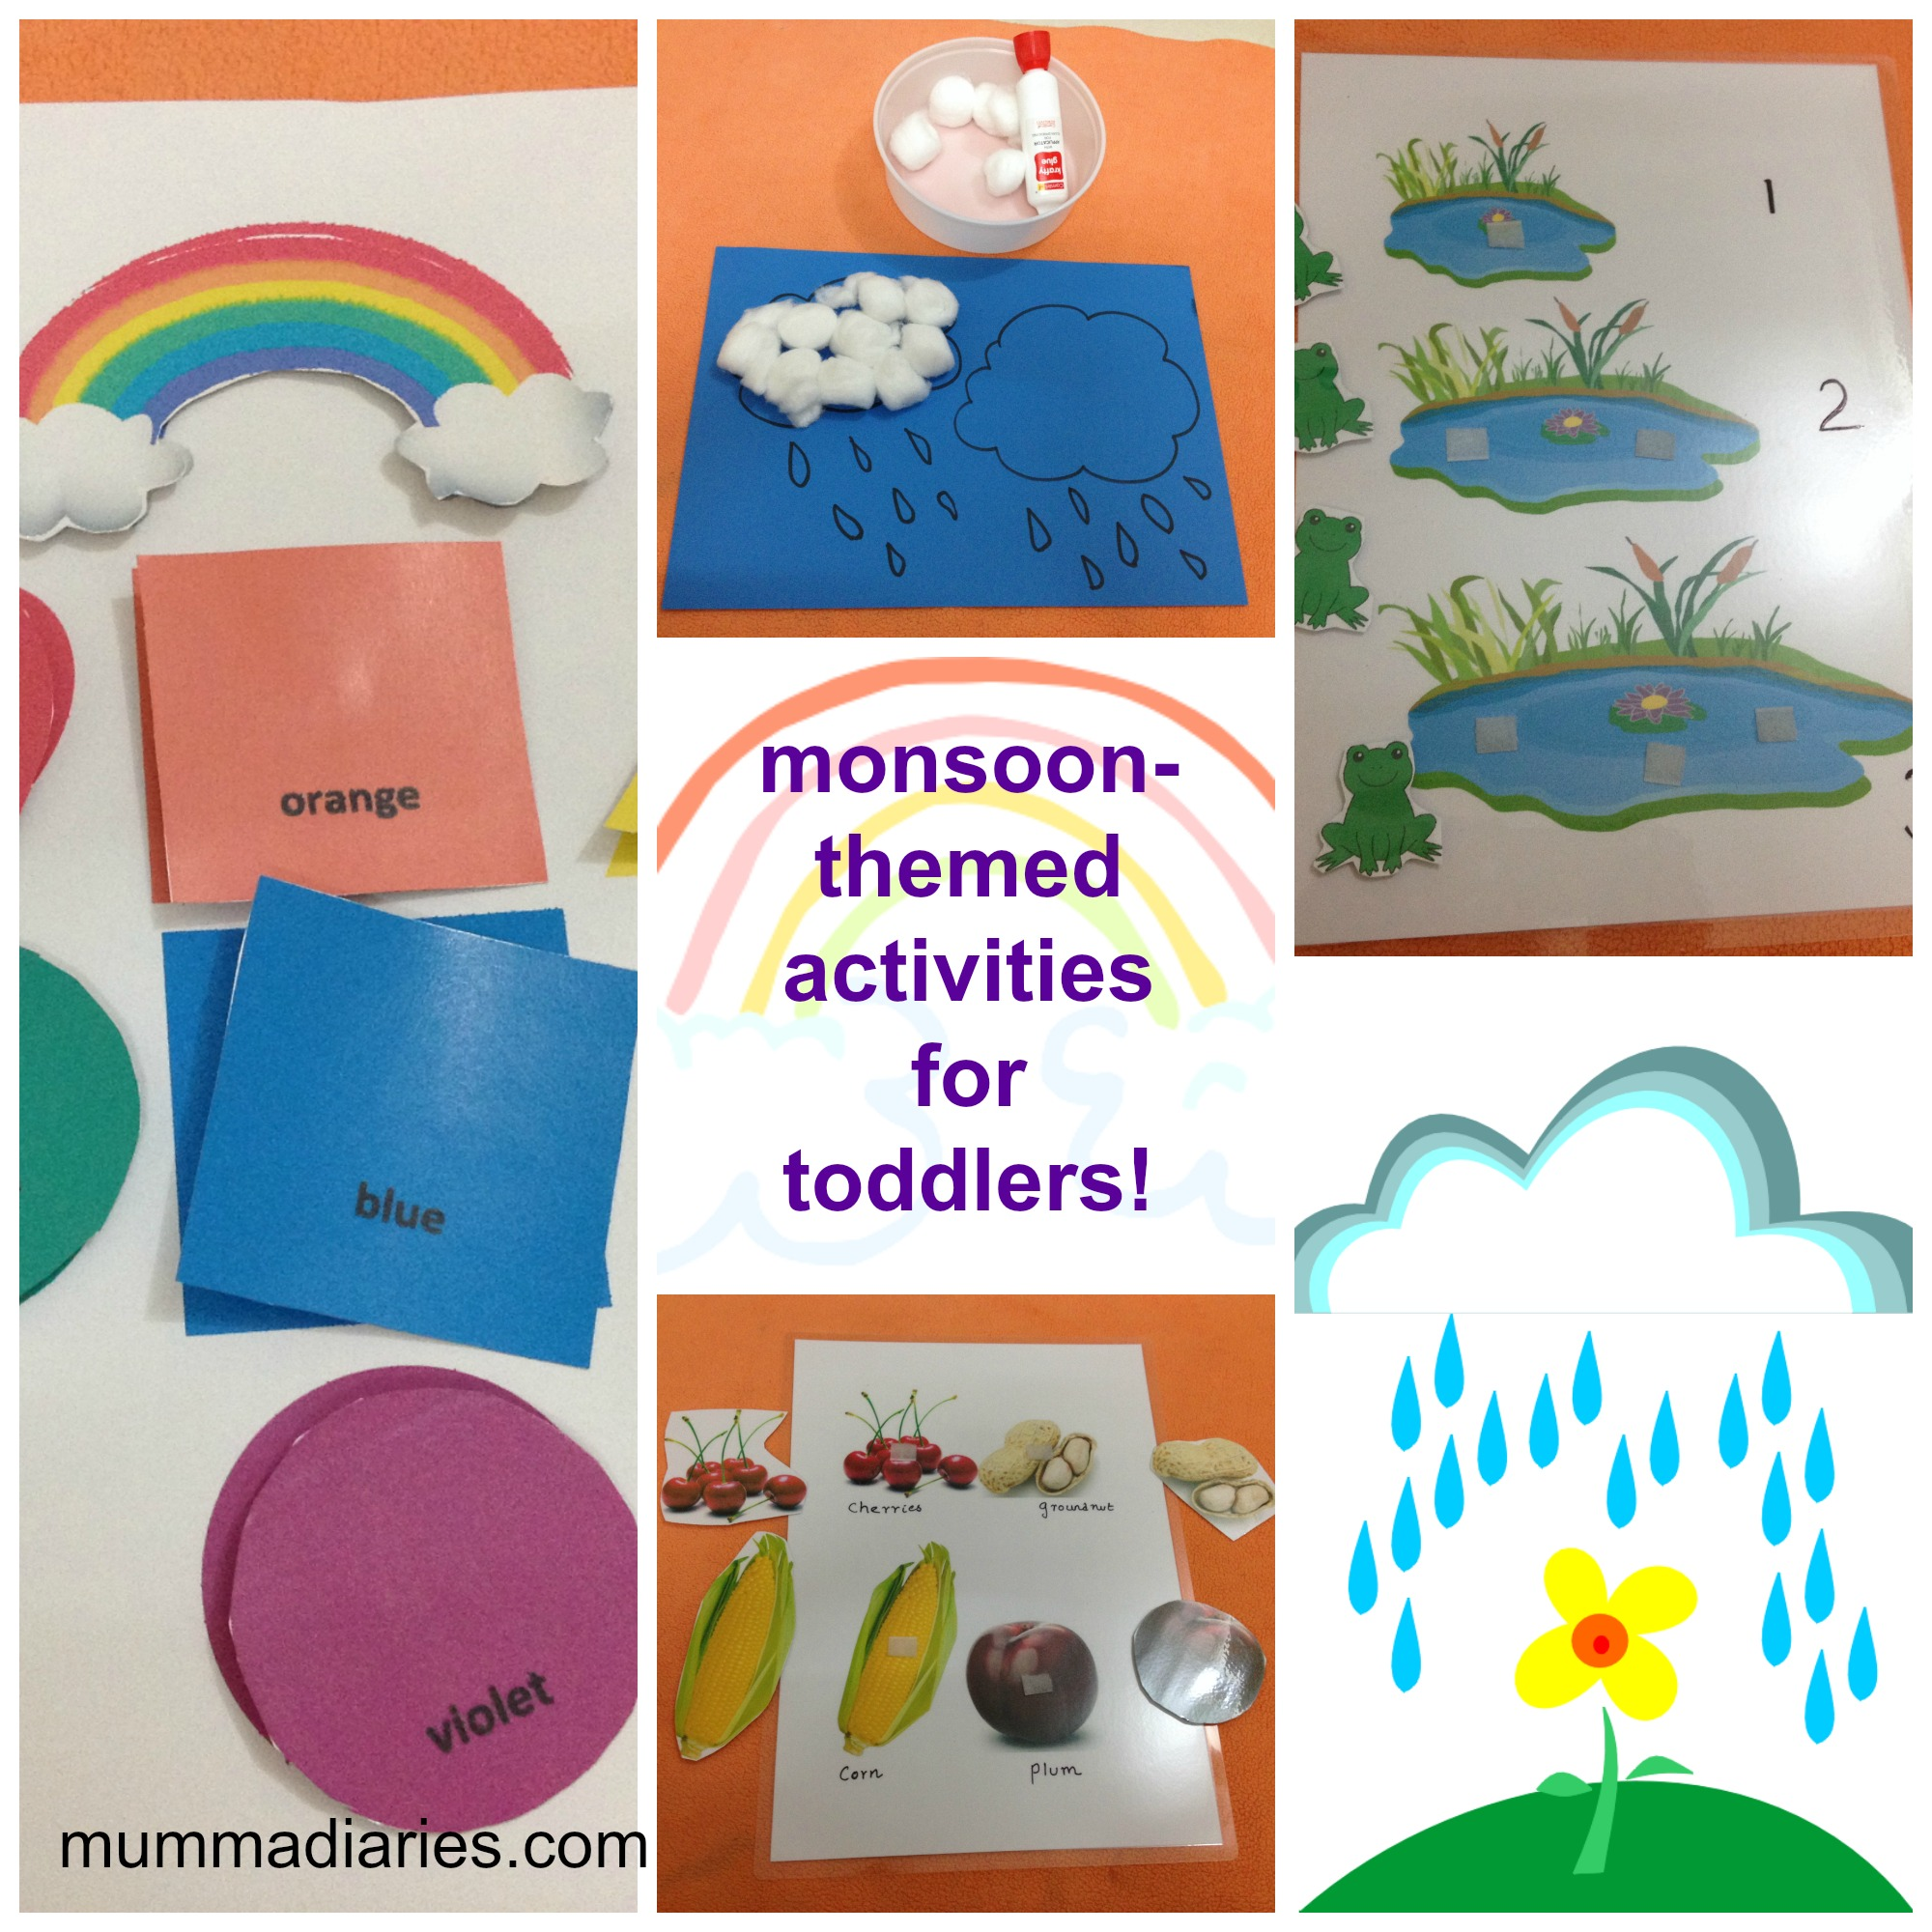 Rainy season themed activities for Toddlers Mumma Diaries